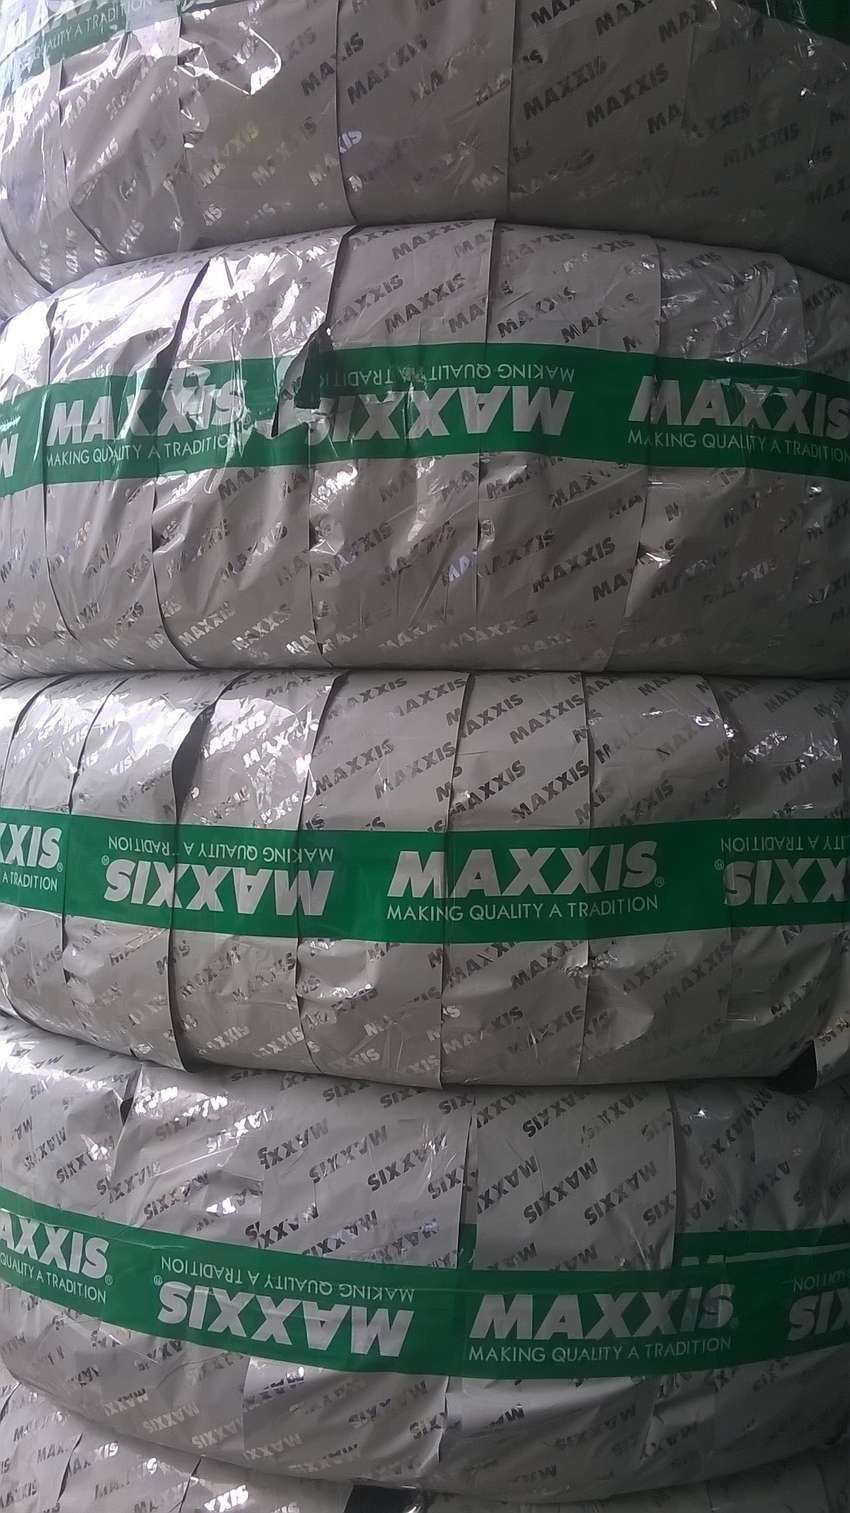 Maxxis superior tyres 0